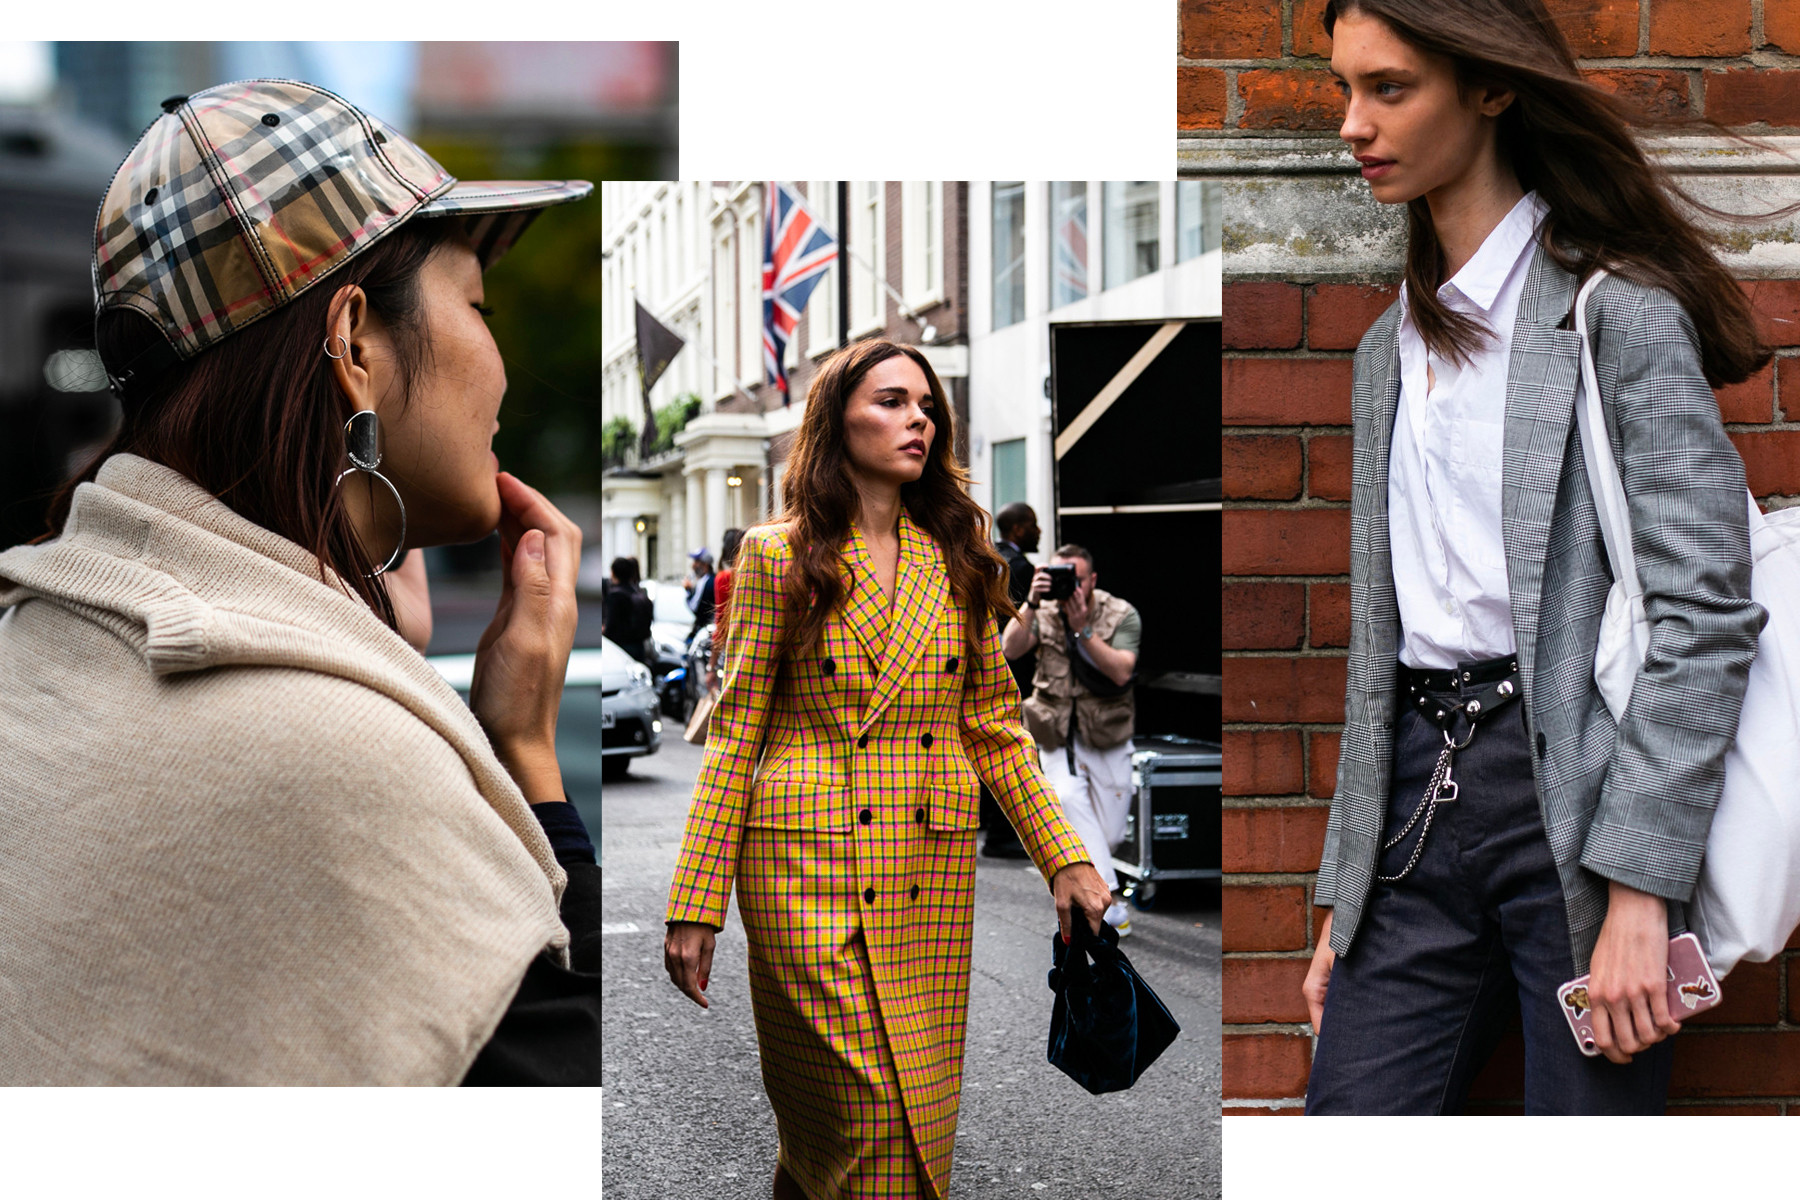 Top 5 Street Style Trends Spotted at MBFWA 2019